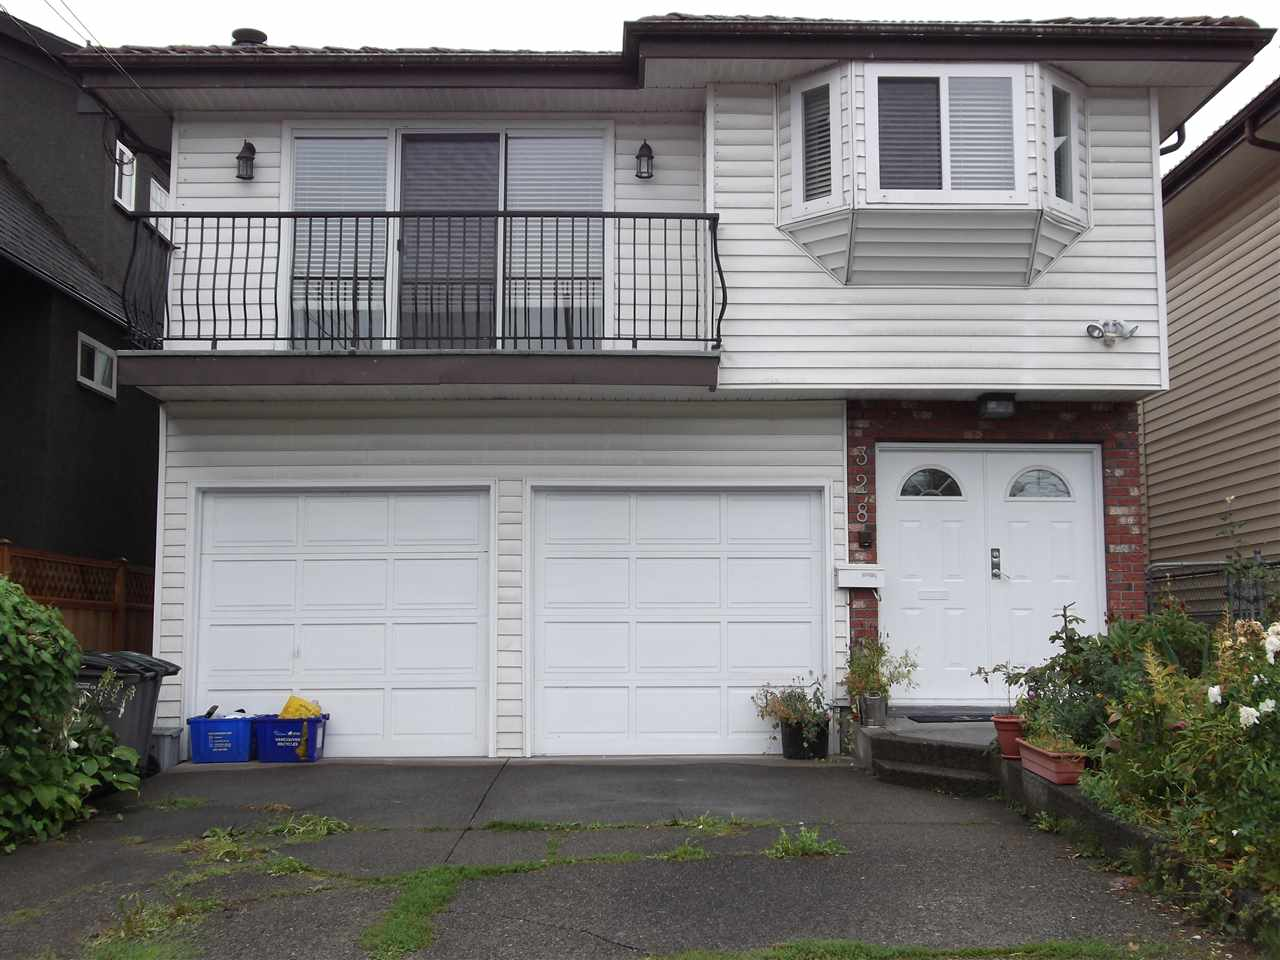 Beautiful, updated, bright home. 4 bathrooms, large covered sundeck, 2 car garage, updated wood floor, new cabinets, a must see property. All sizes and ages are approx. only. The Buyer should not rely upon the listing information without the Buyer independently verifying the information. Open house on October 7, 2017, 2-4 pm.